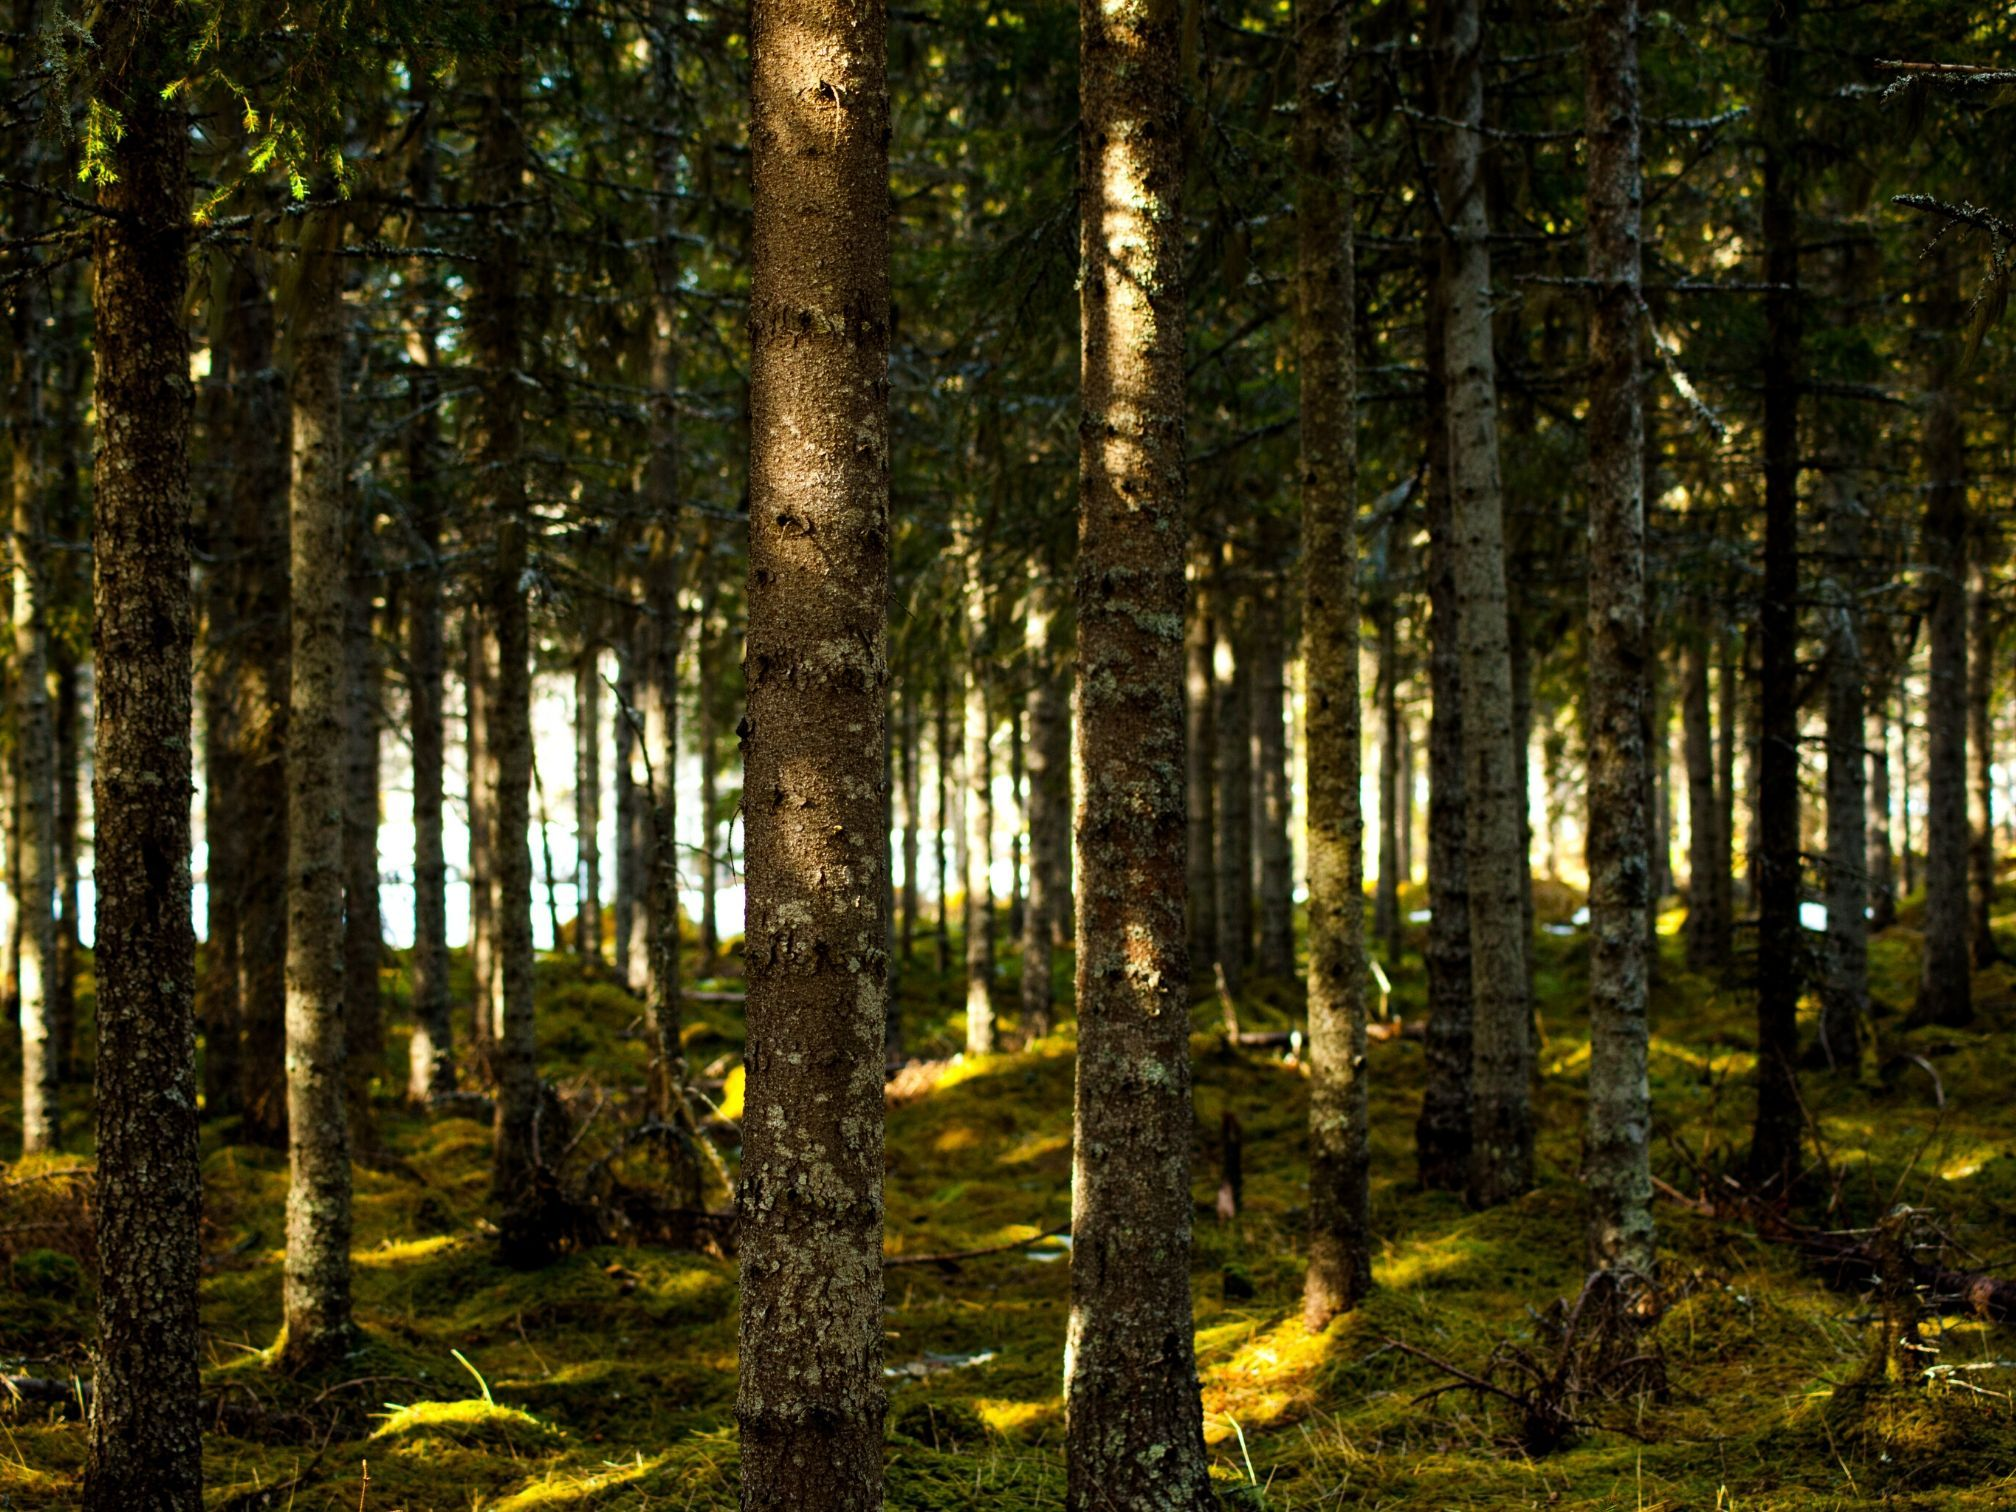 Conflict is back in Tasmania's forests, and two decisions in Victoria could make it worse